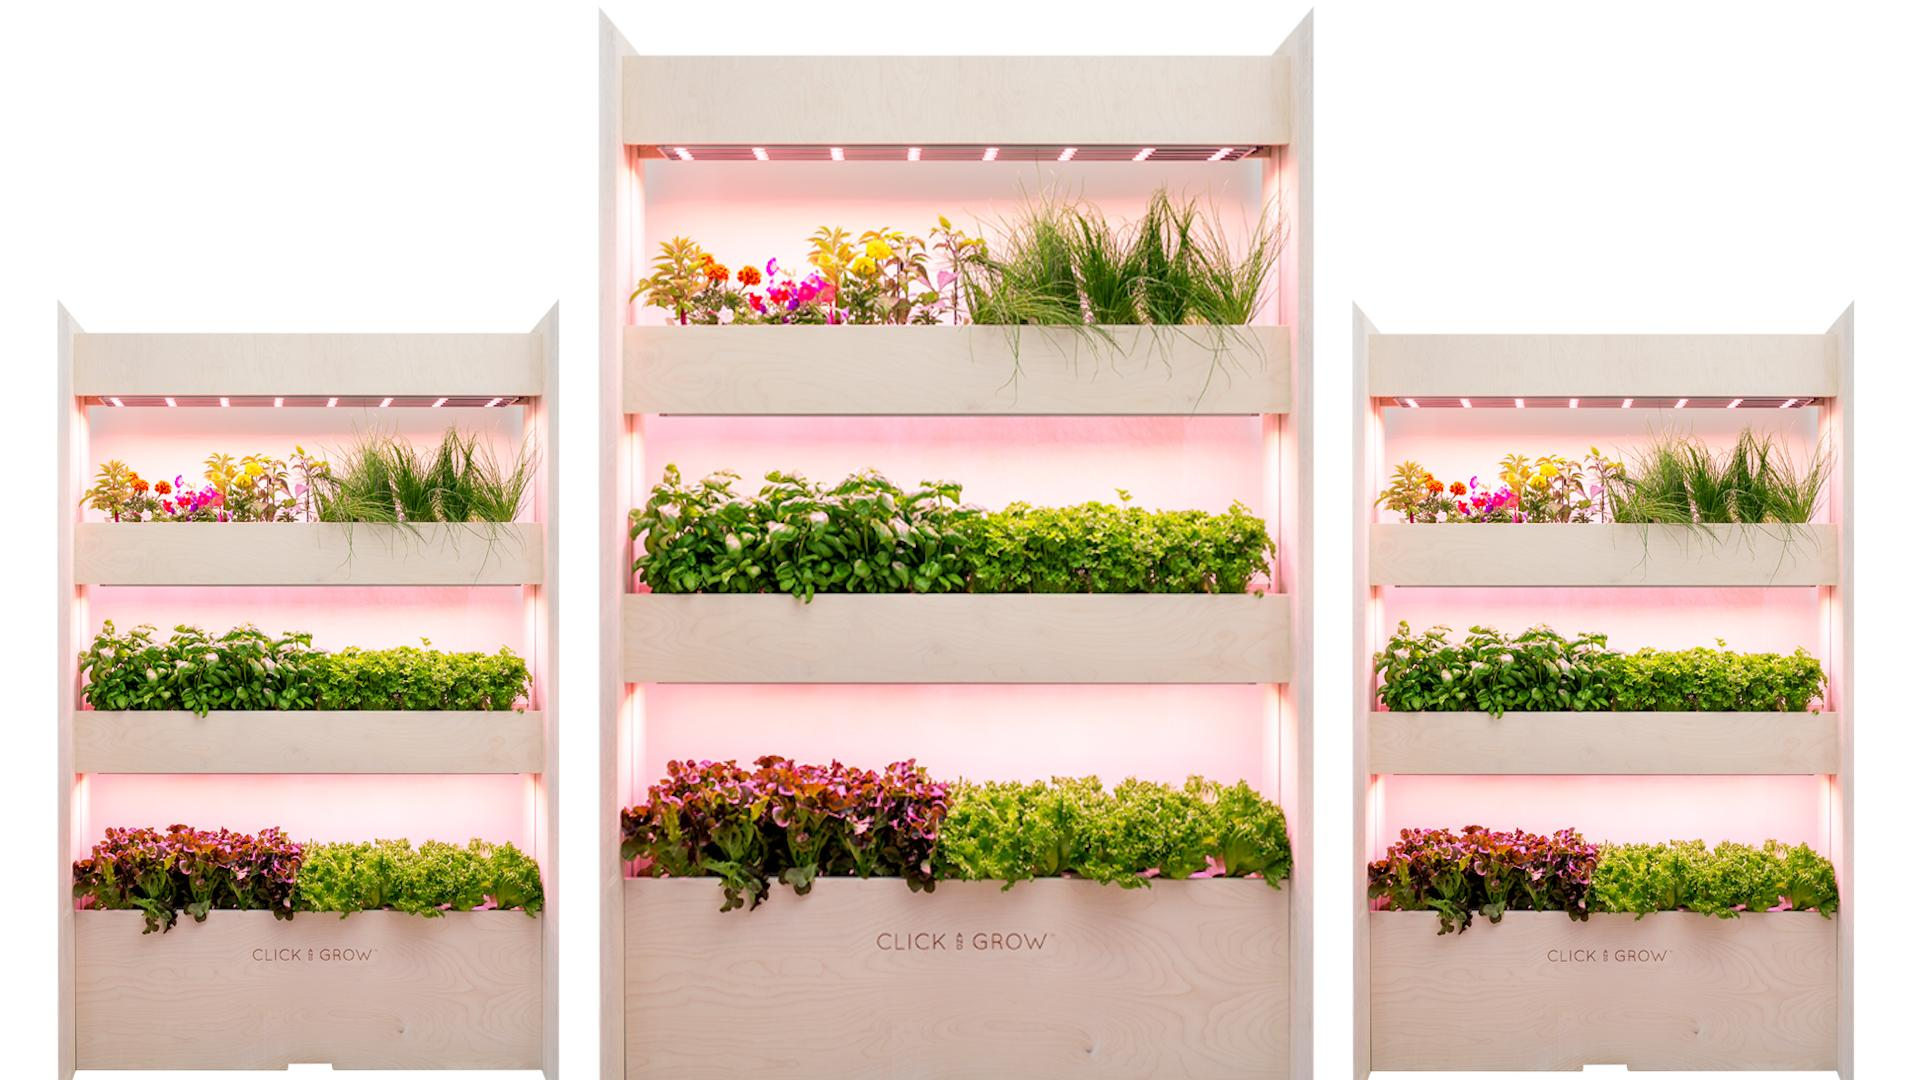 This NASA-Inspired Garden Grows Food In Your Living Room